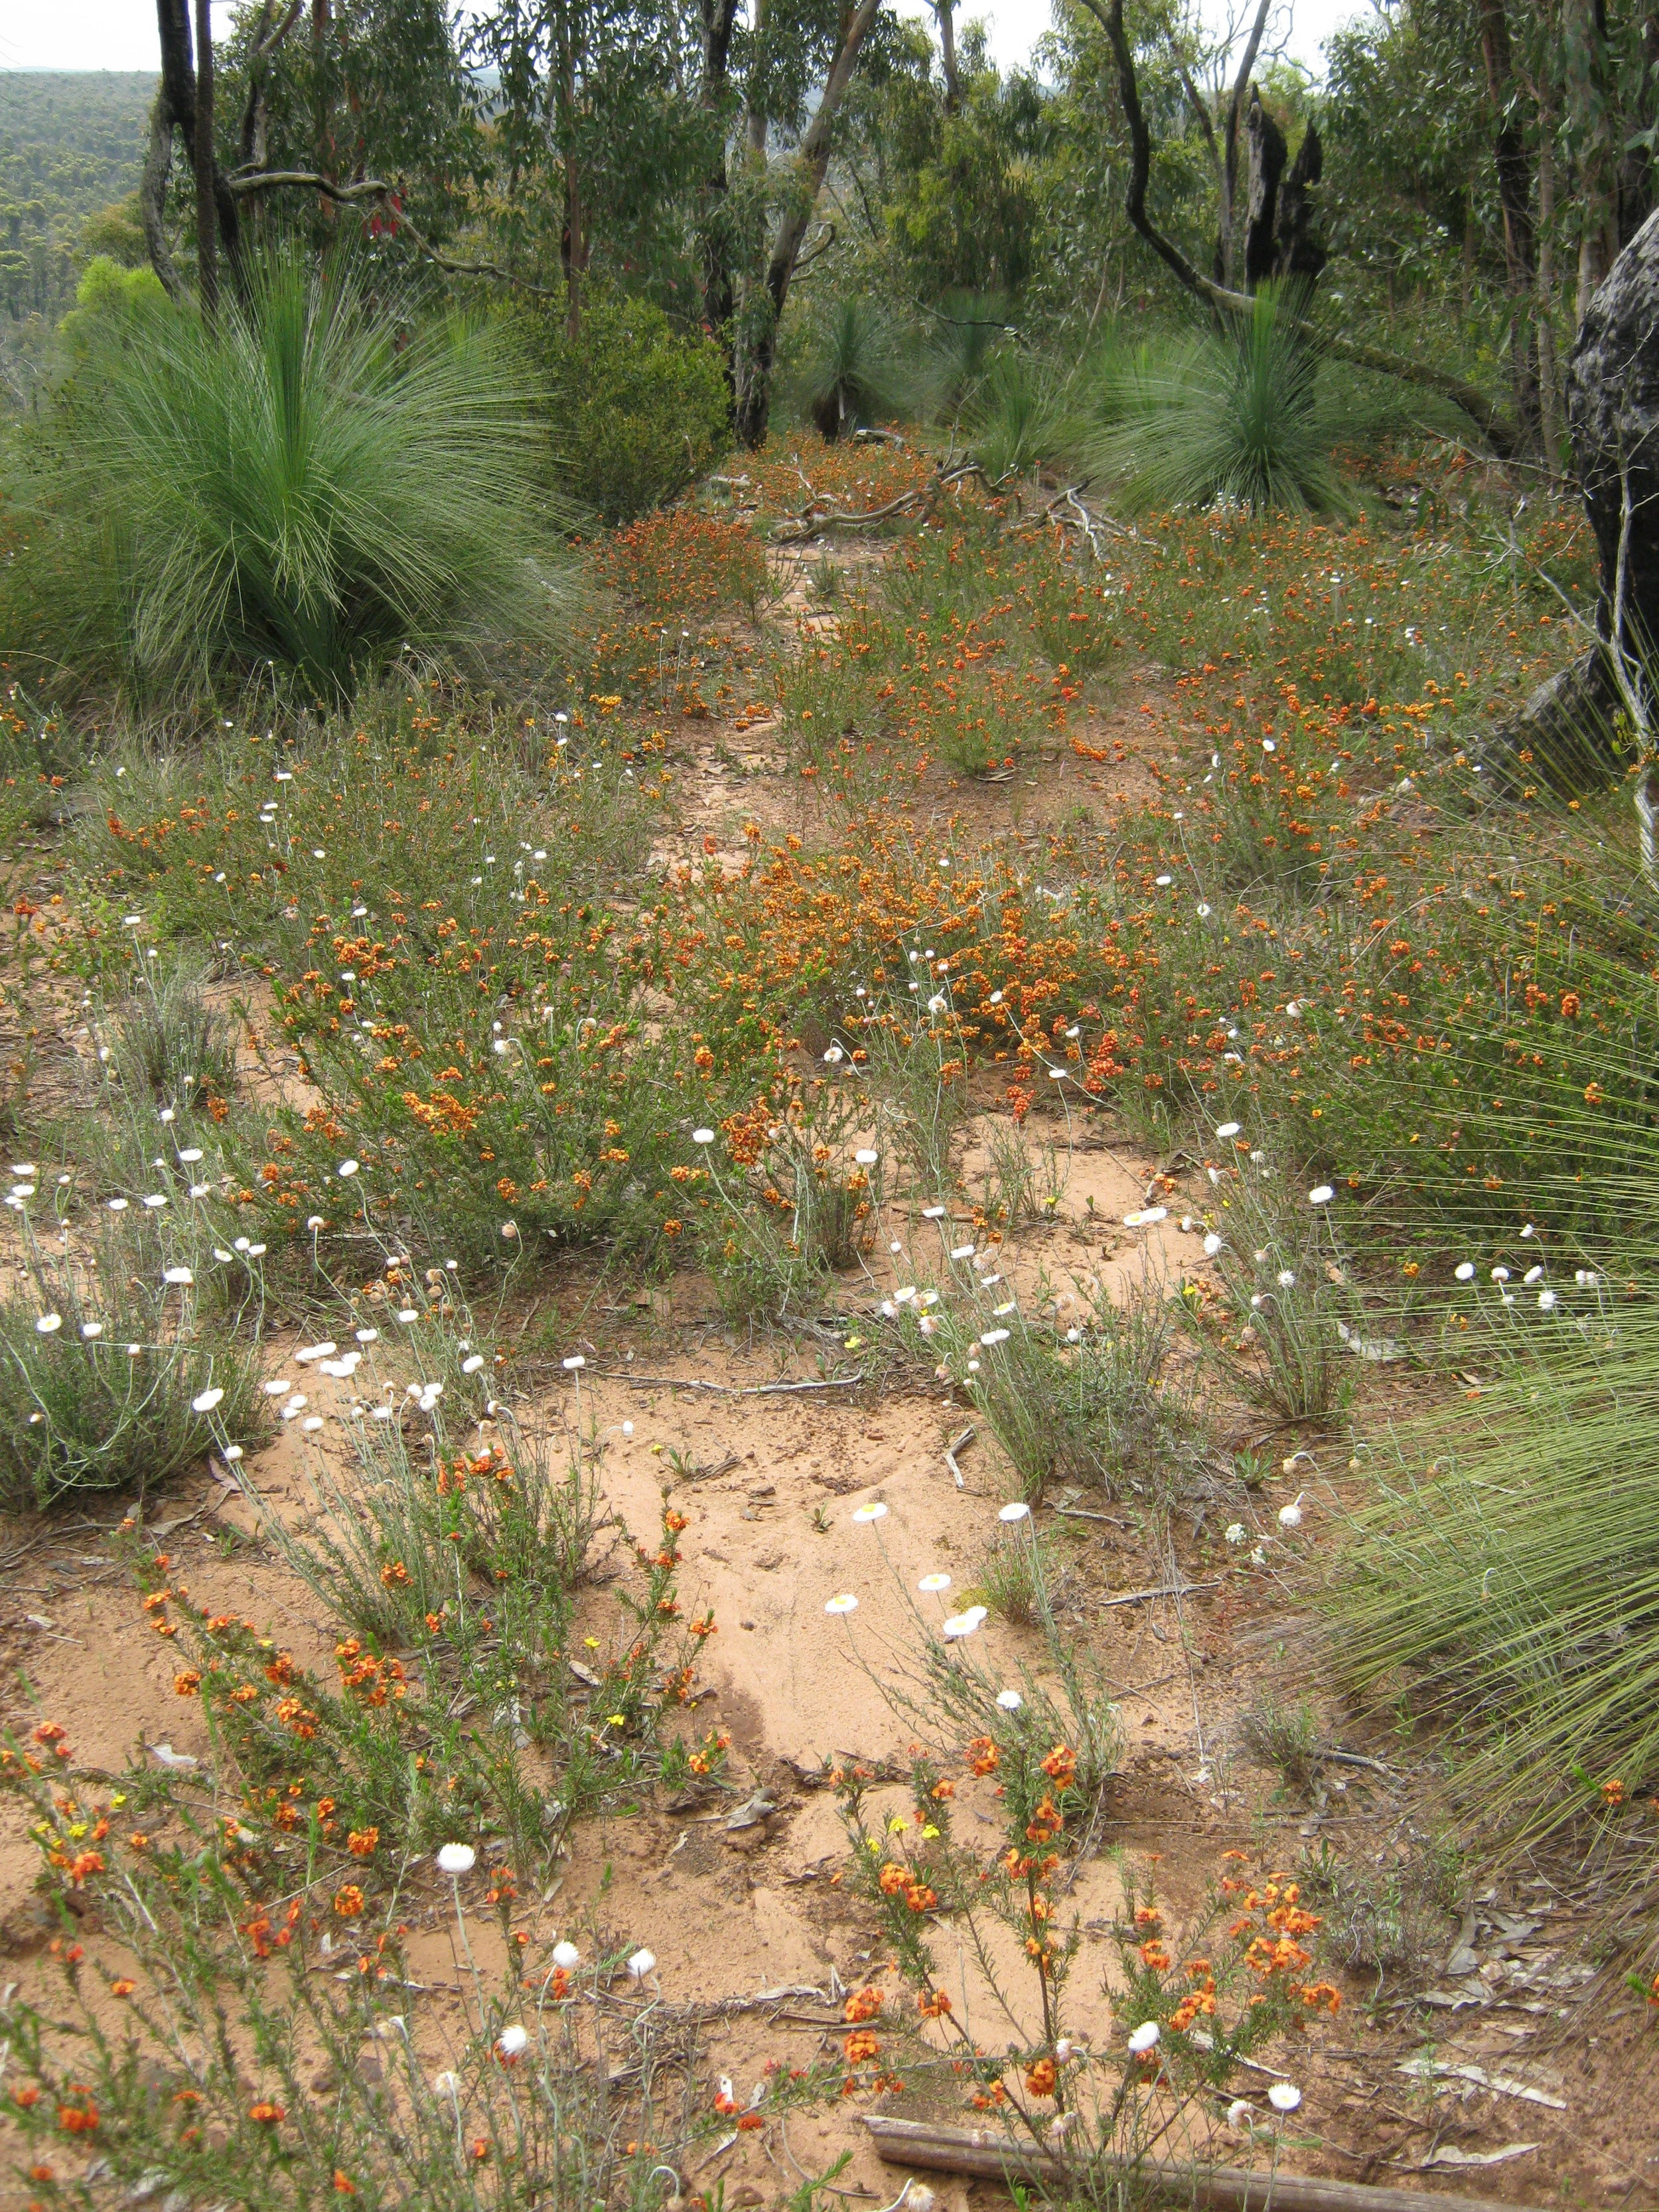 A view of grass trees and wildflowers. Image: Wendy Cook